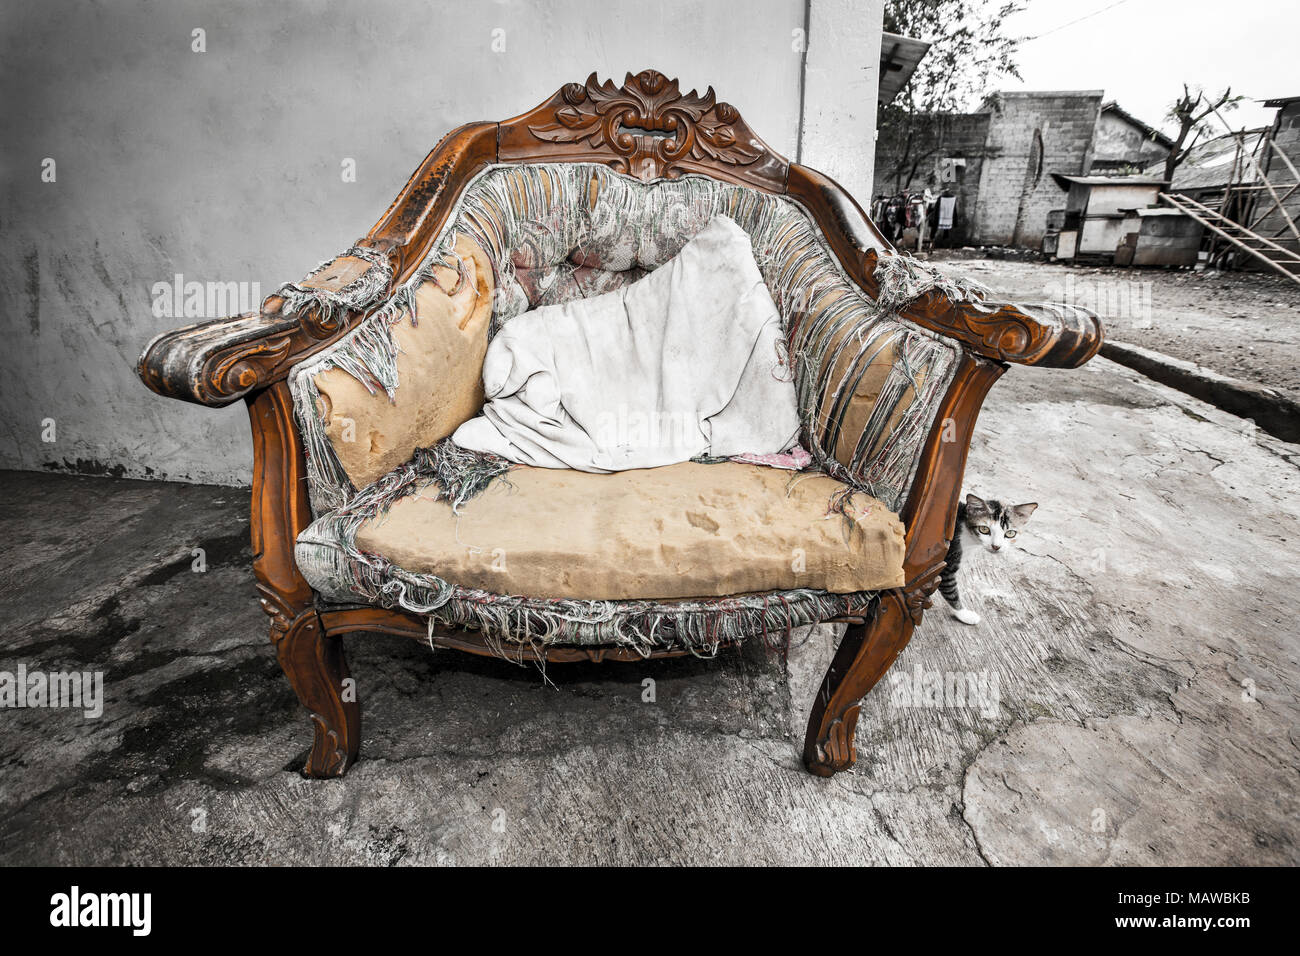 Tatty old chair in Indonesian kampung (Village) Stock Photo